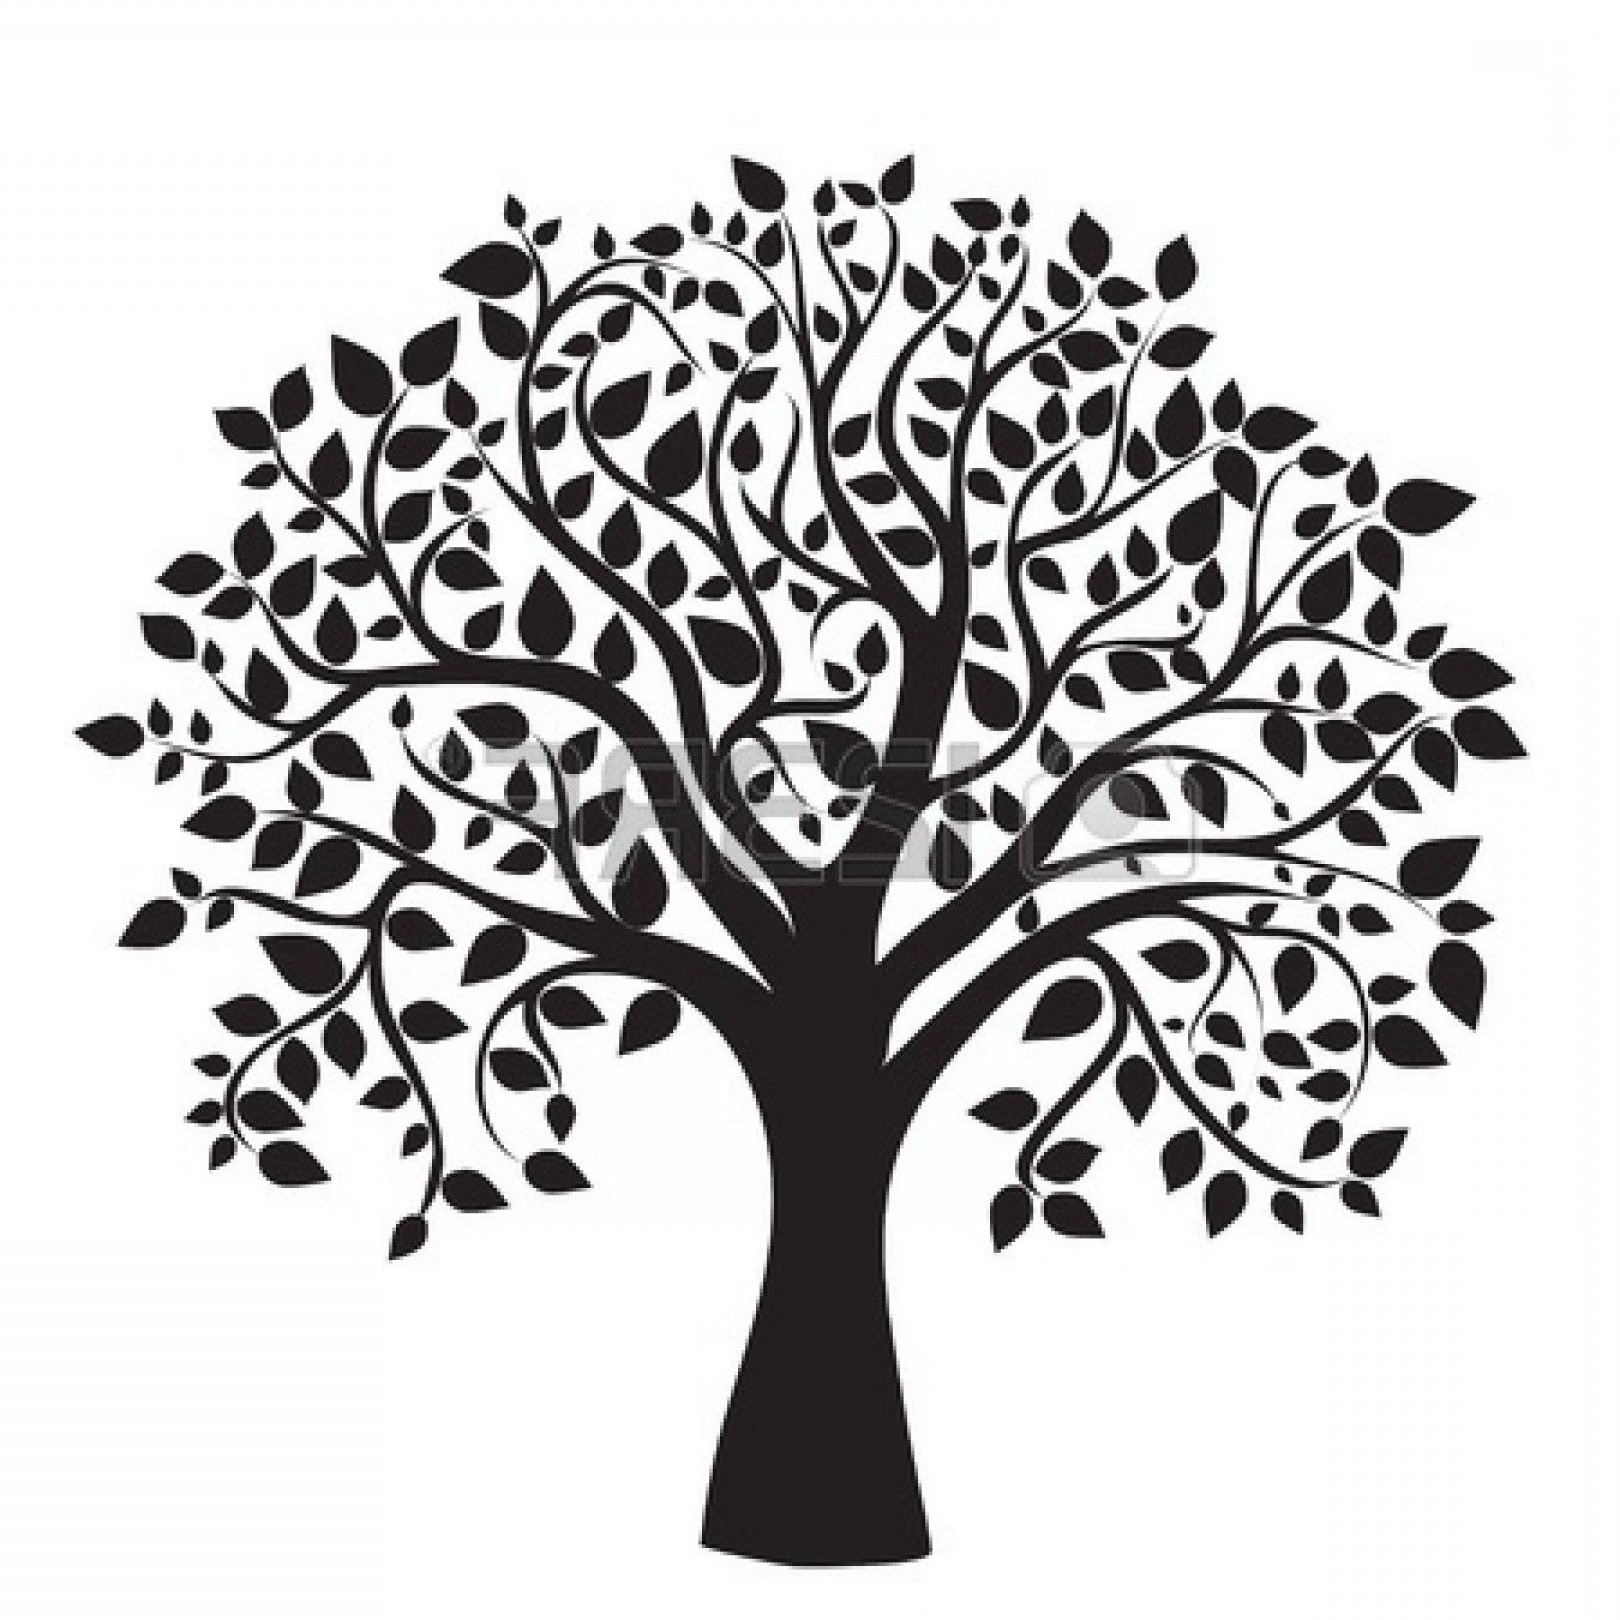 Tree of life silhouette clipart png freeuse library Free Clipart Images Tree Of Life | SOIDERGI png freeuse library